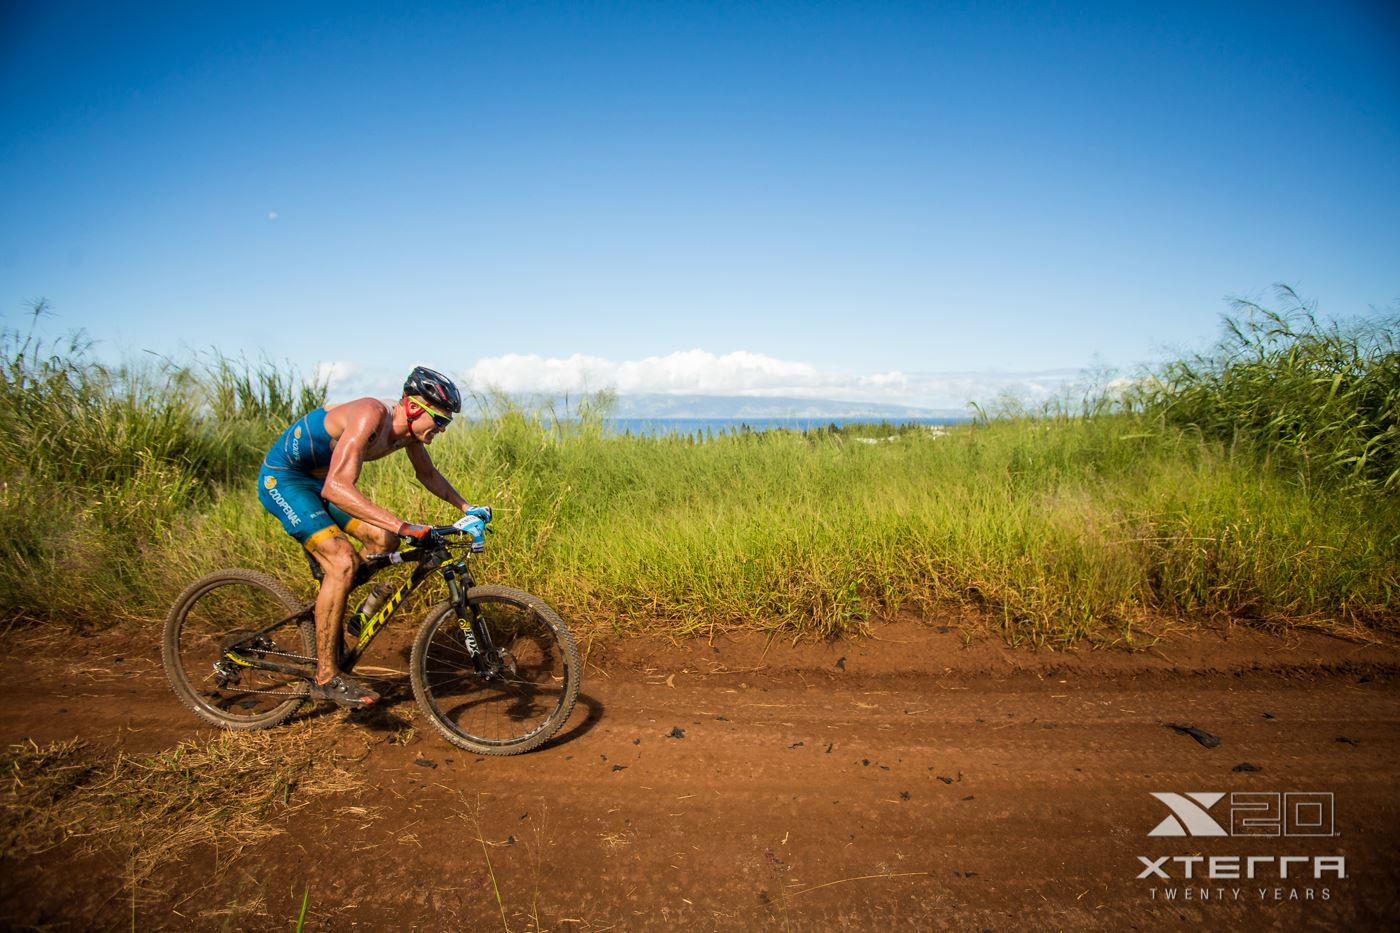 XTERRA_WORLD_CHAMPIONSHIP_2015_00036